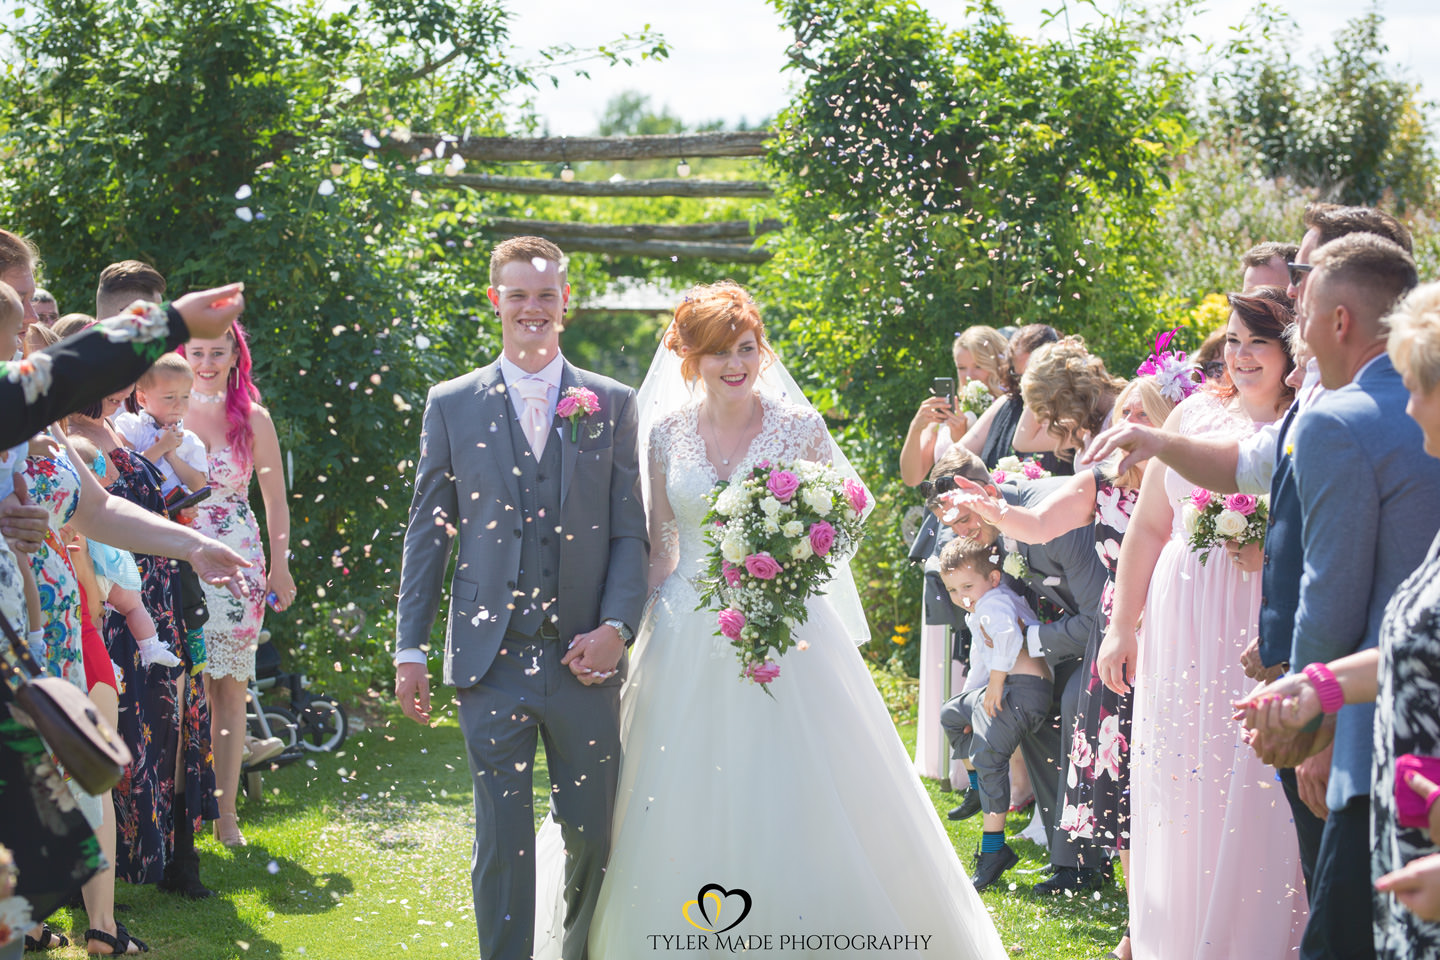 Confetti shot with bride and groom at The Gardens in Yalding